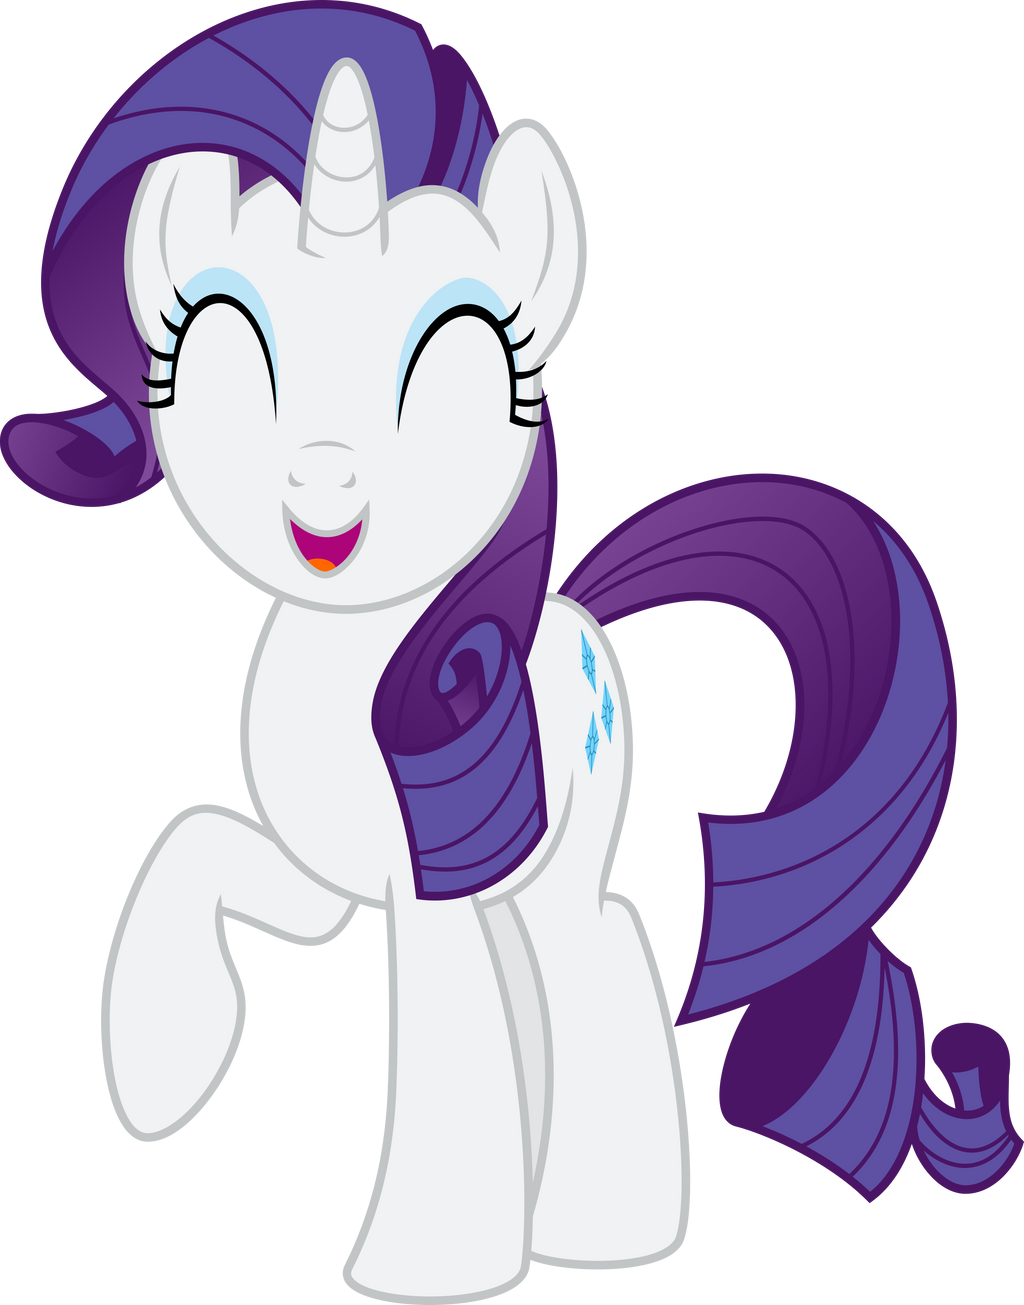 Rarity is Pleased by This by Aethon056